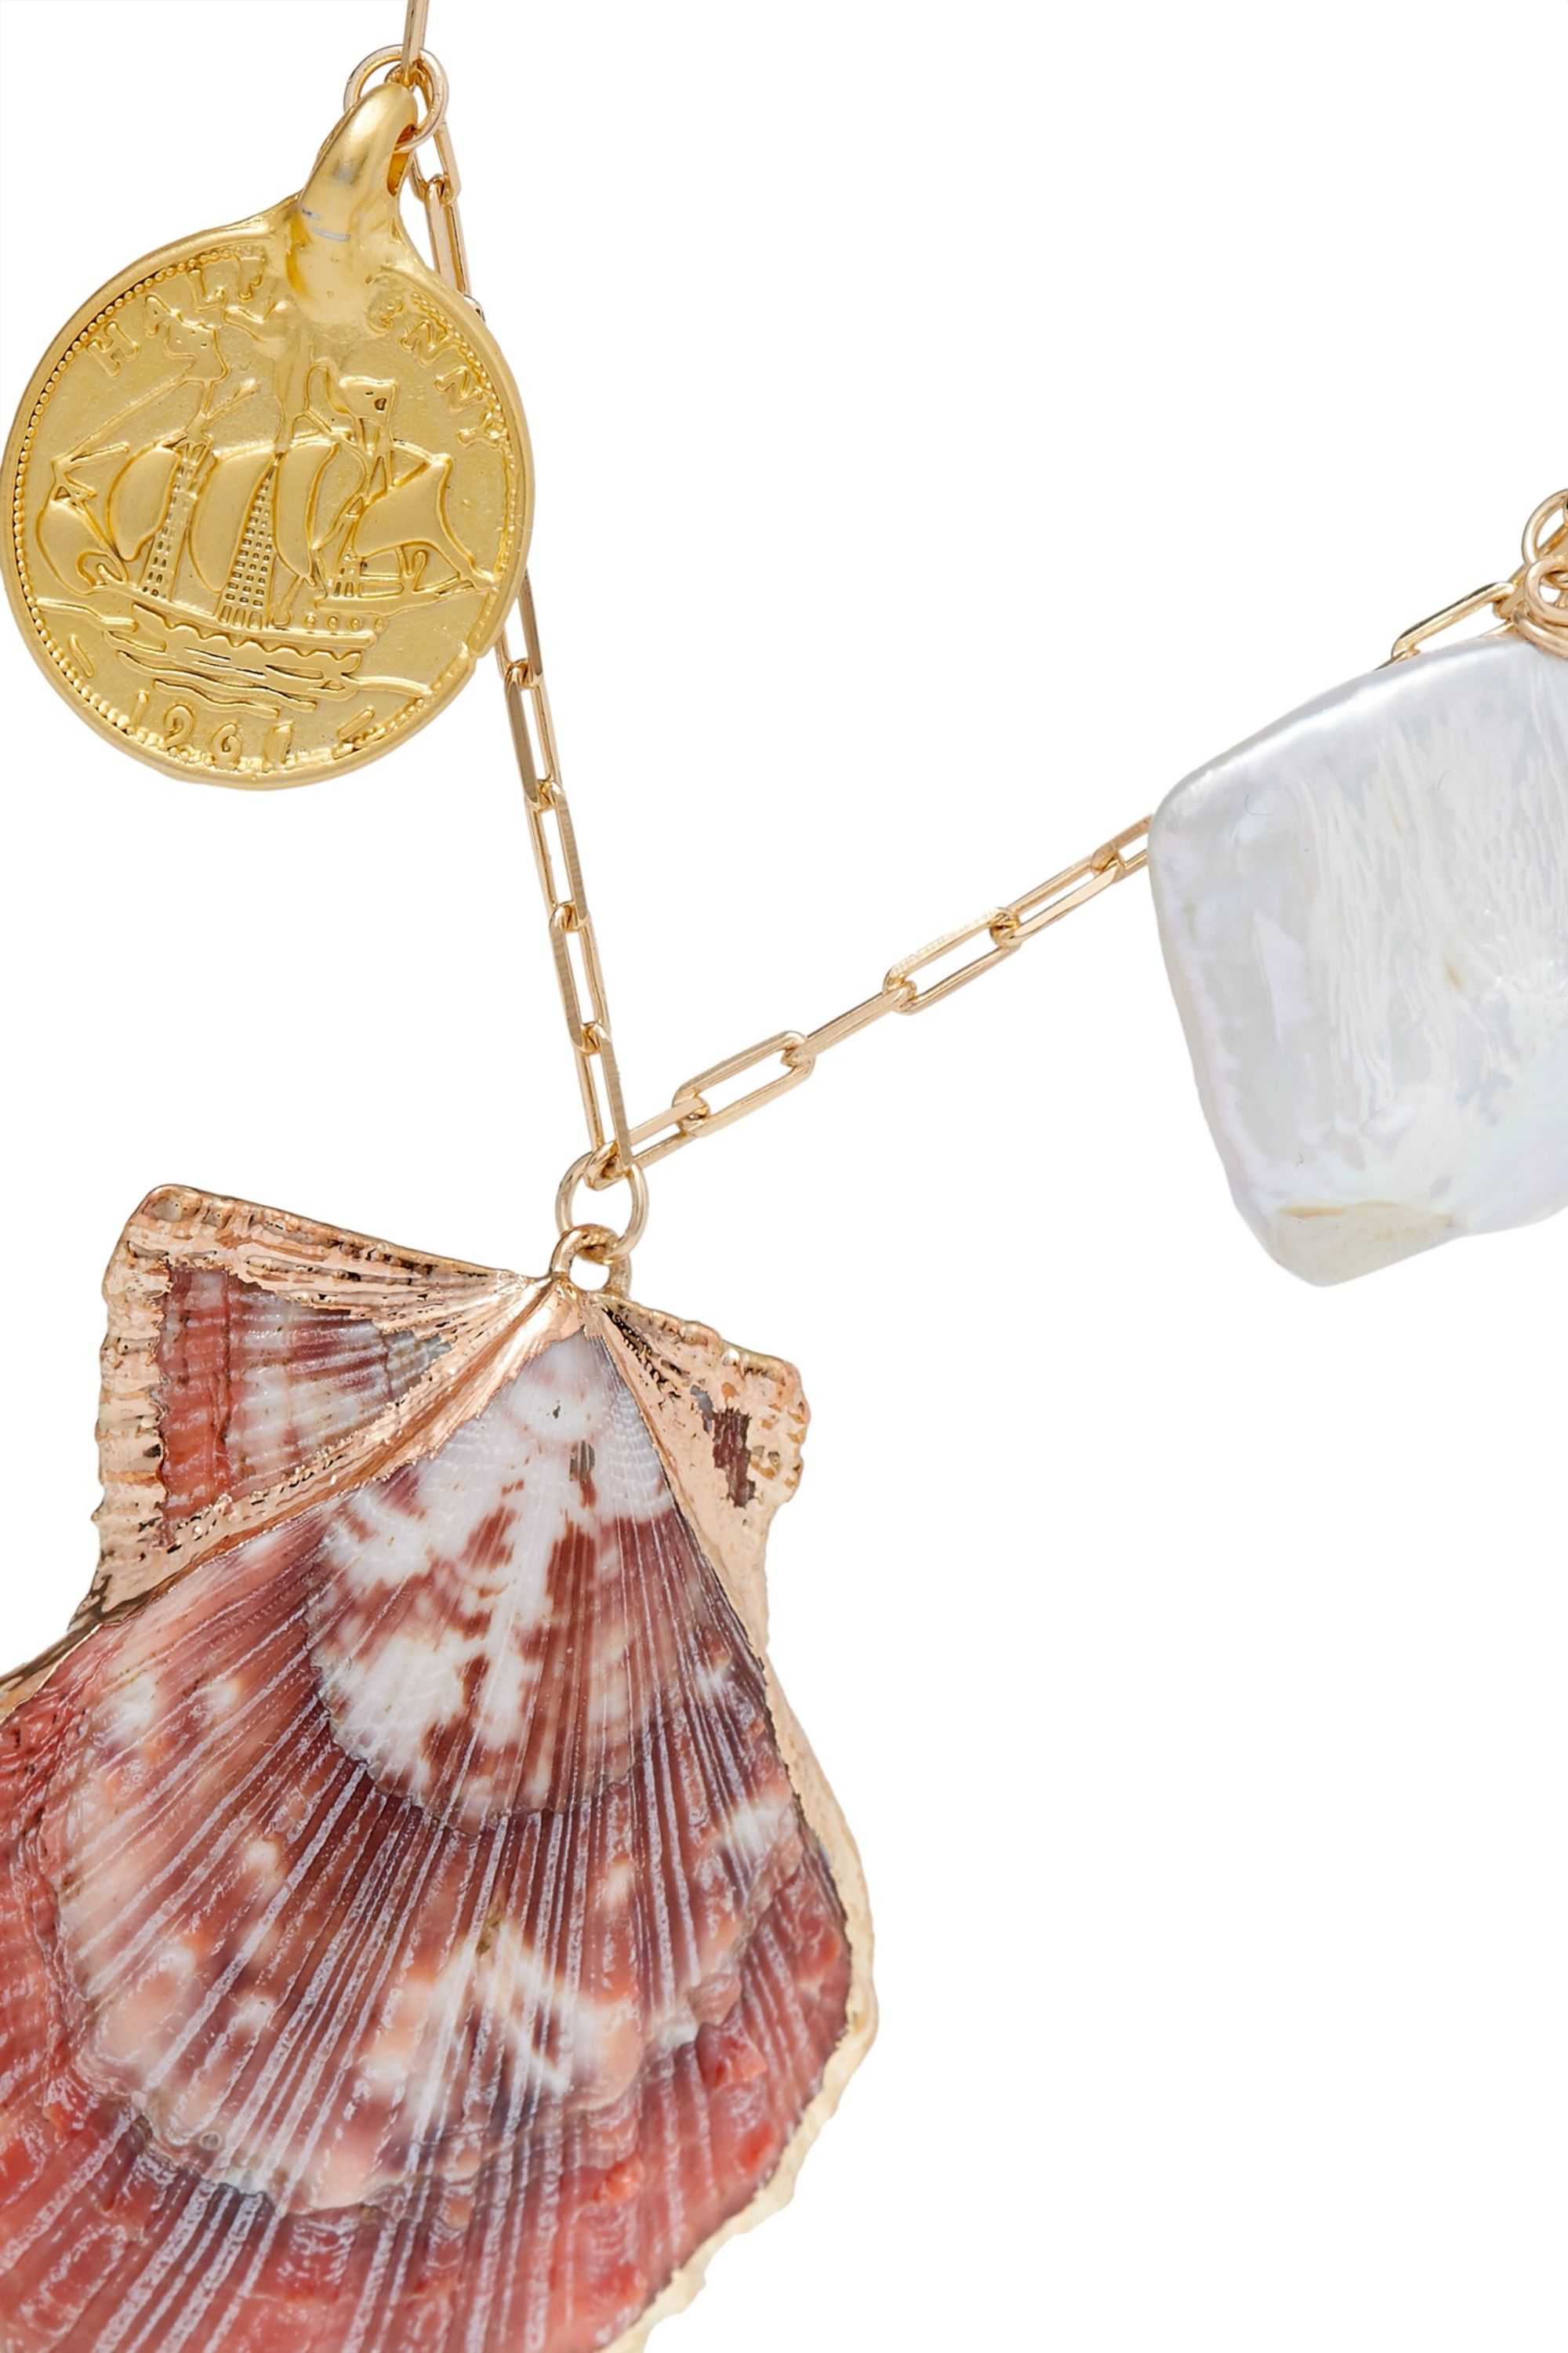 éliou Argos gold-filled, shell and pearl necklace